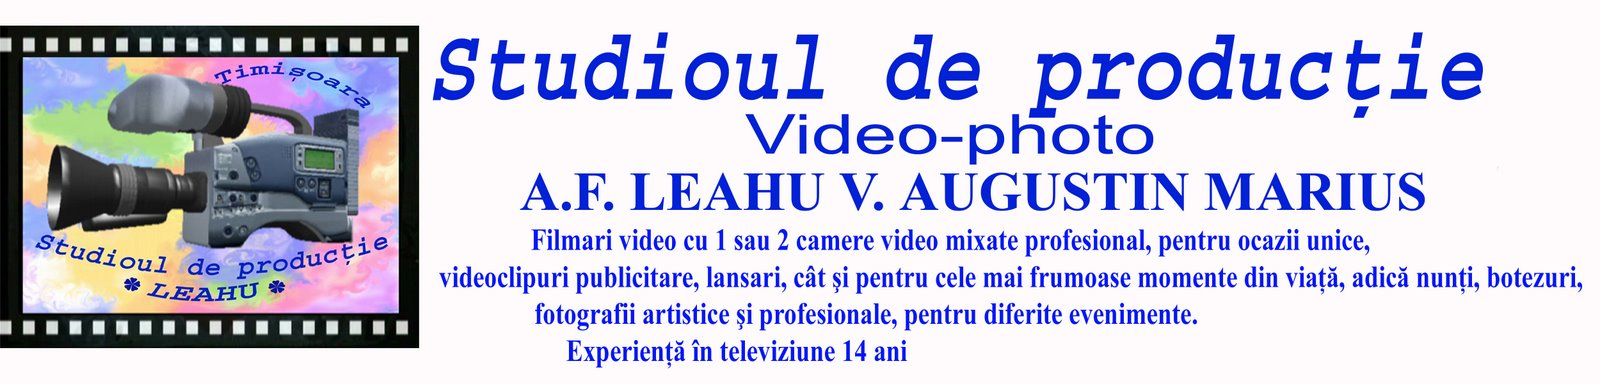 Studioul de productie Video-photo Leahu Timisoara